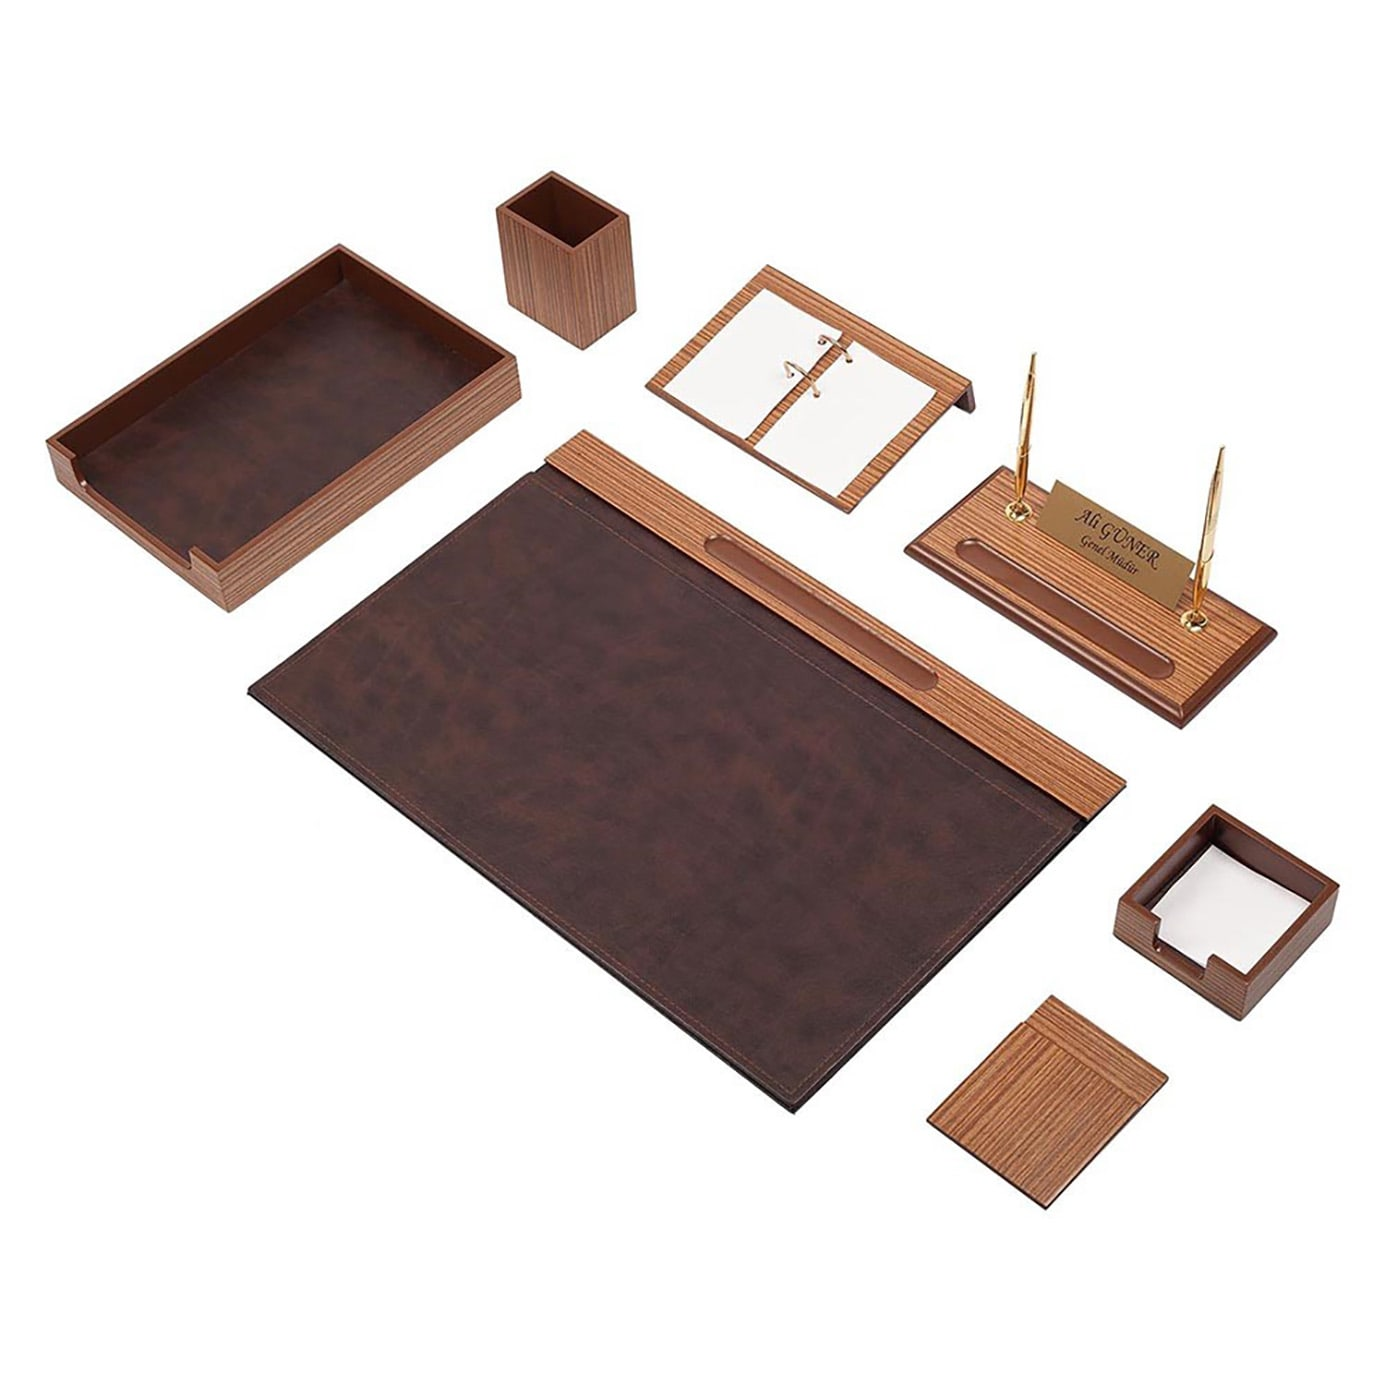 Wooden Desk Set Walnut 10 Pieces